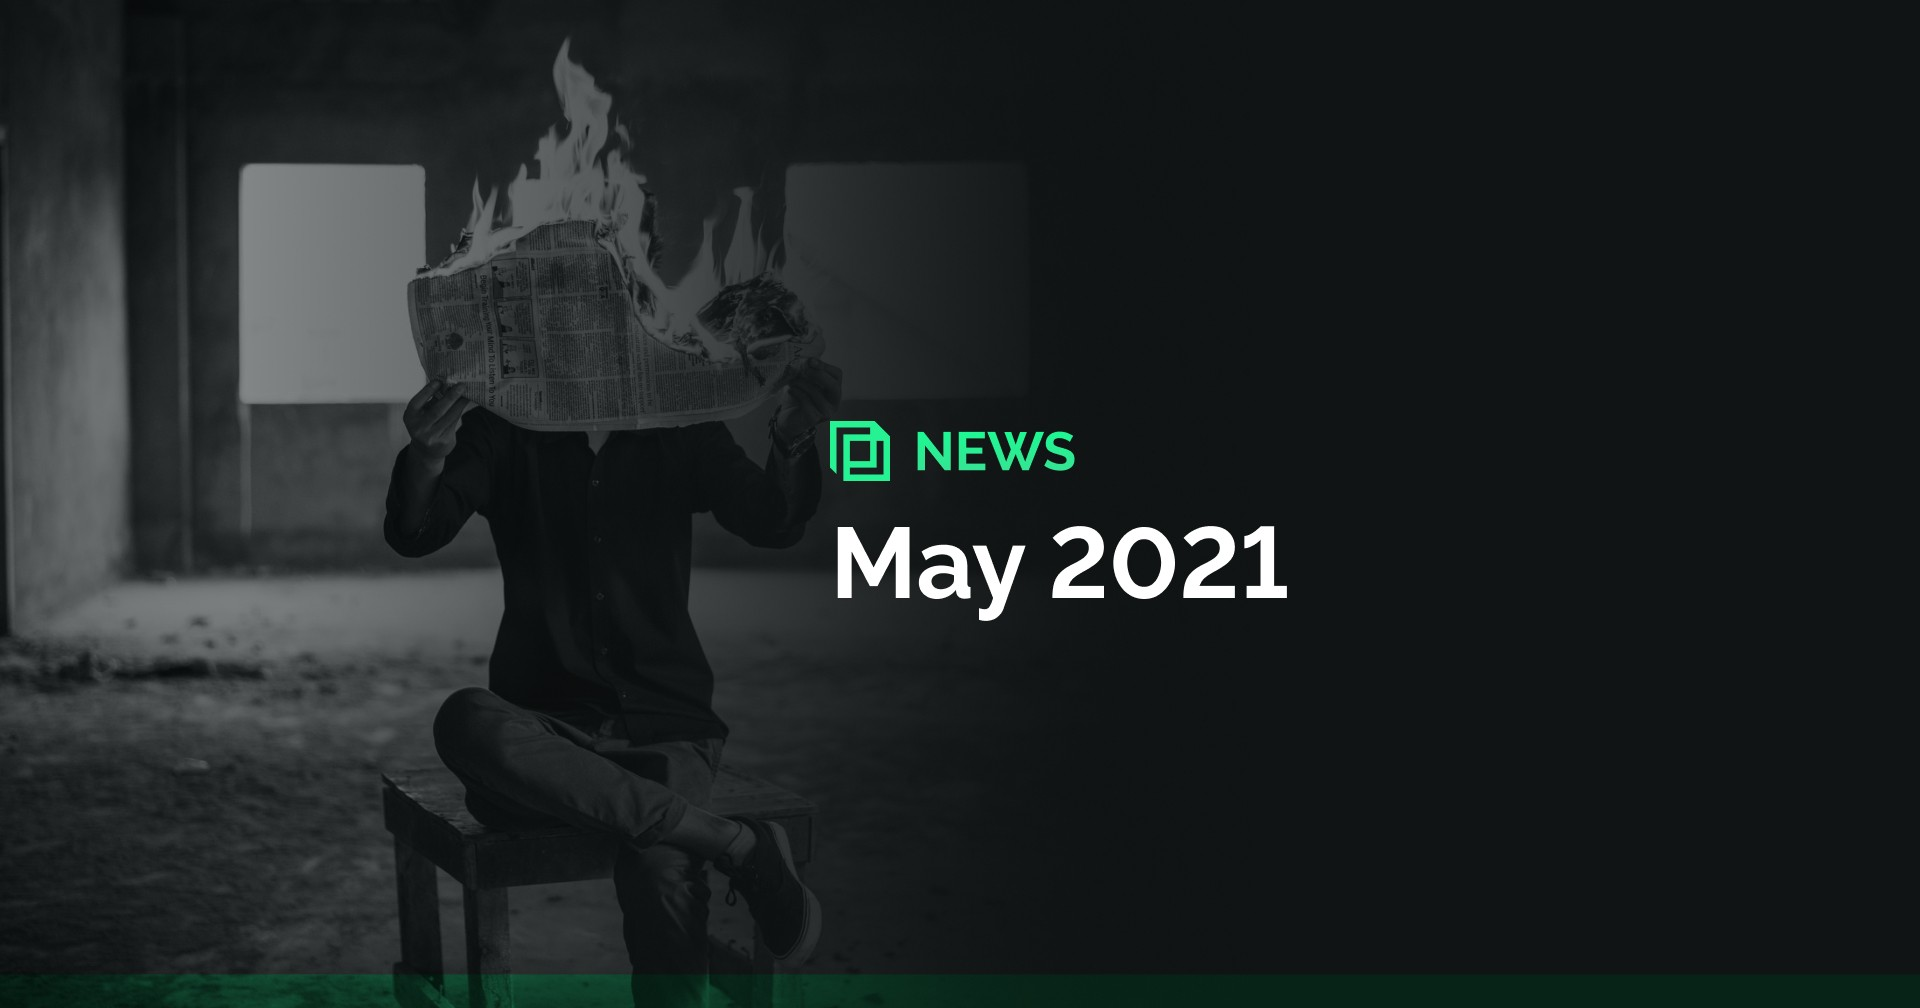 Particl.page May 2021 updates